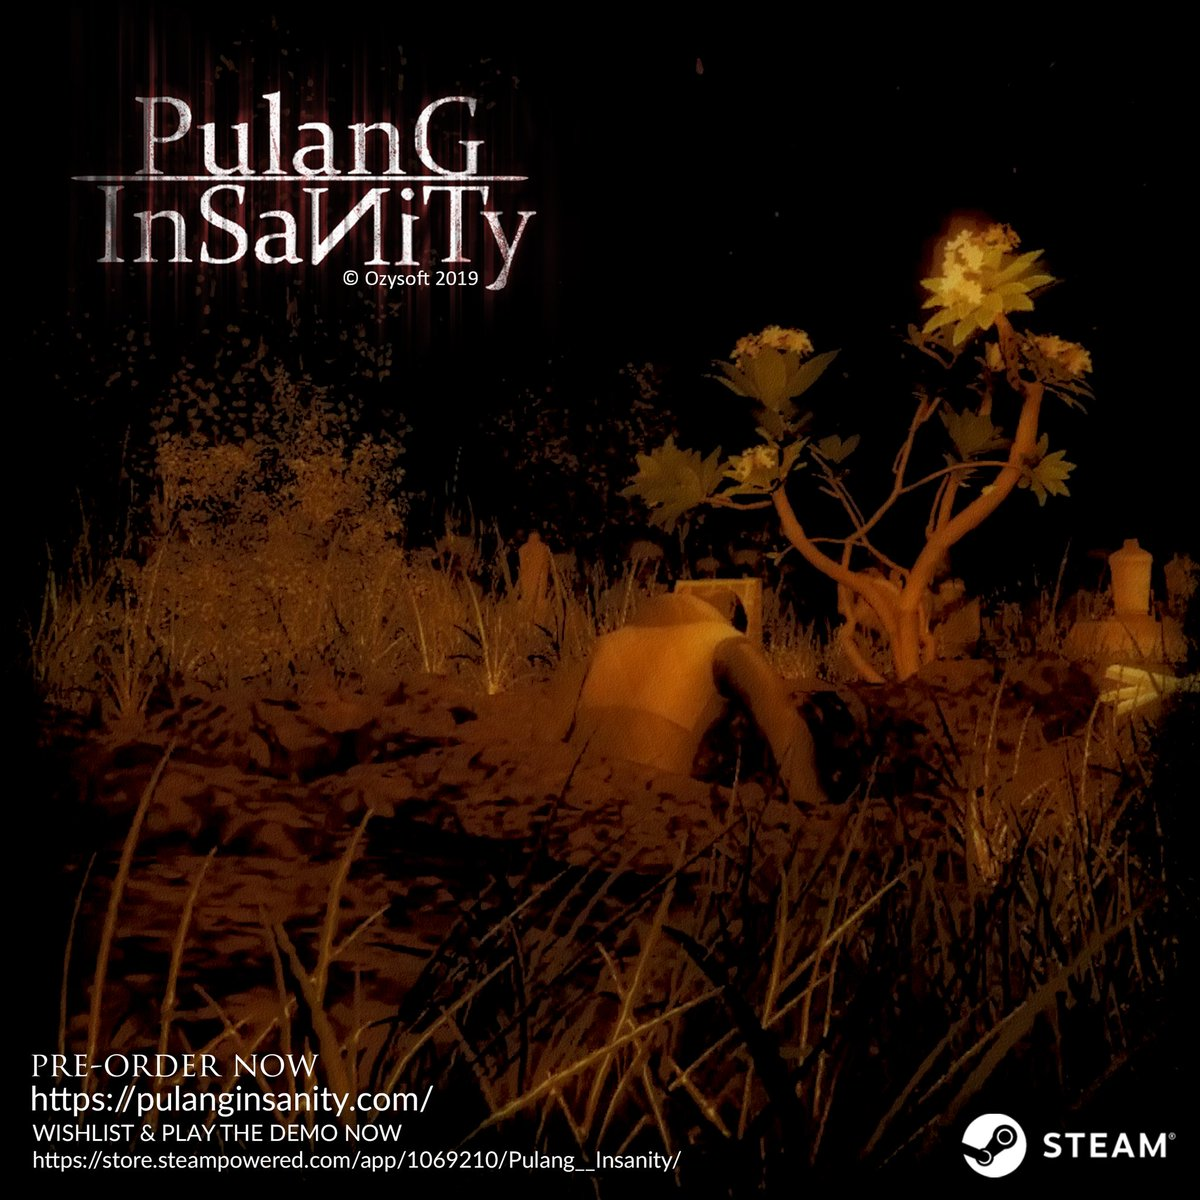 WISHLIST & PLAY THE DEMO NOW https://store.steampowered.com/app/1069210/Pulang__Insanity/ …  Website : http://pulanginsanity.com/   #EnterInsanity #ComingSoon #Games #Steam #Indonesia #horror #SurvivalHorror #PsychologicalHorror #pulanginsanity #NewDemoUpdatepic.twitter.com/hsADF74rXj